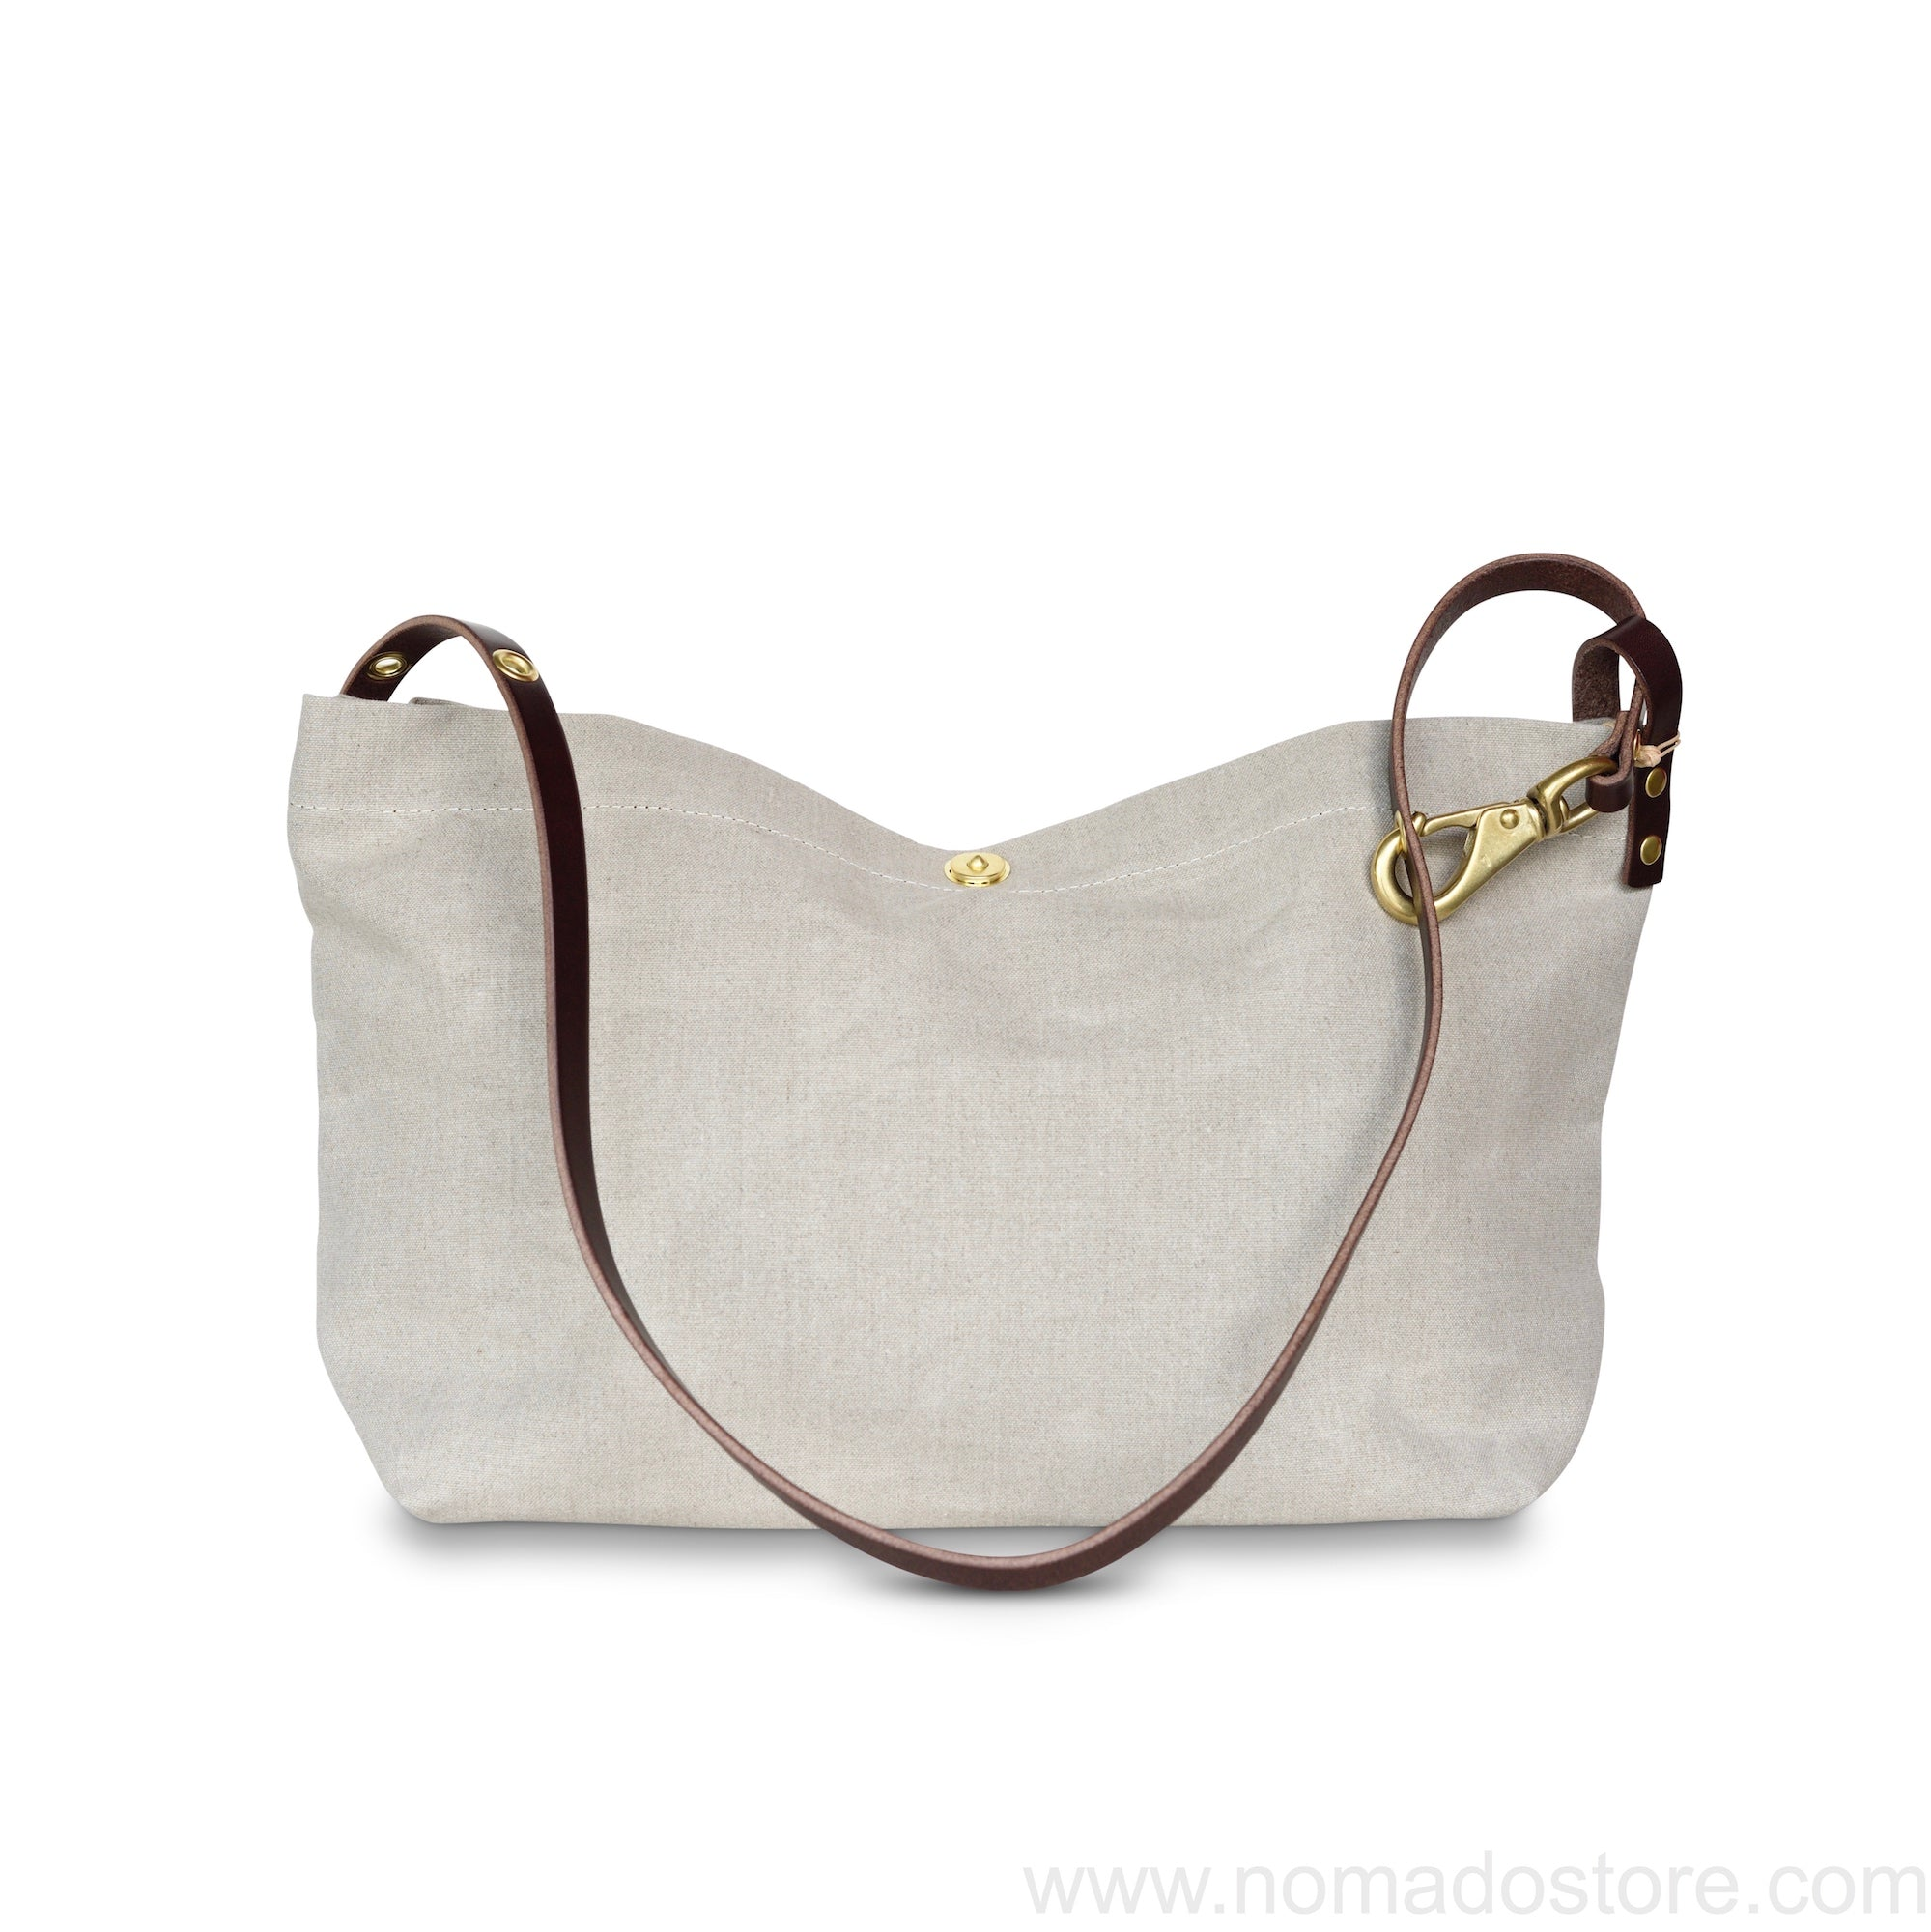 Marineday Fourship Linen Canvas Shoulder Bag (Natural) - NOMADO Store